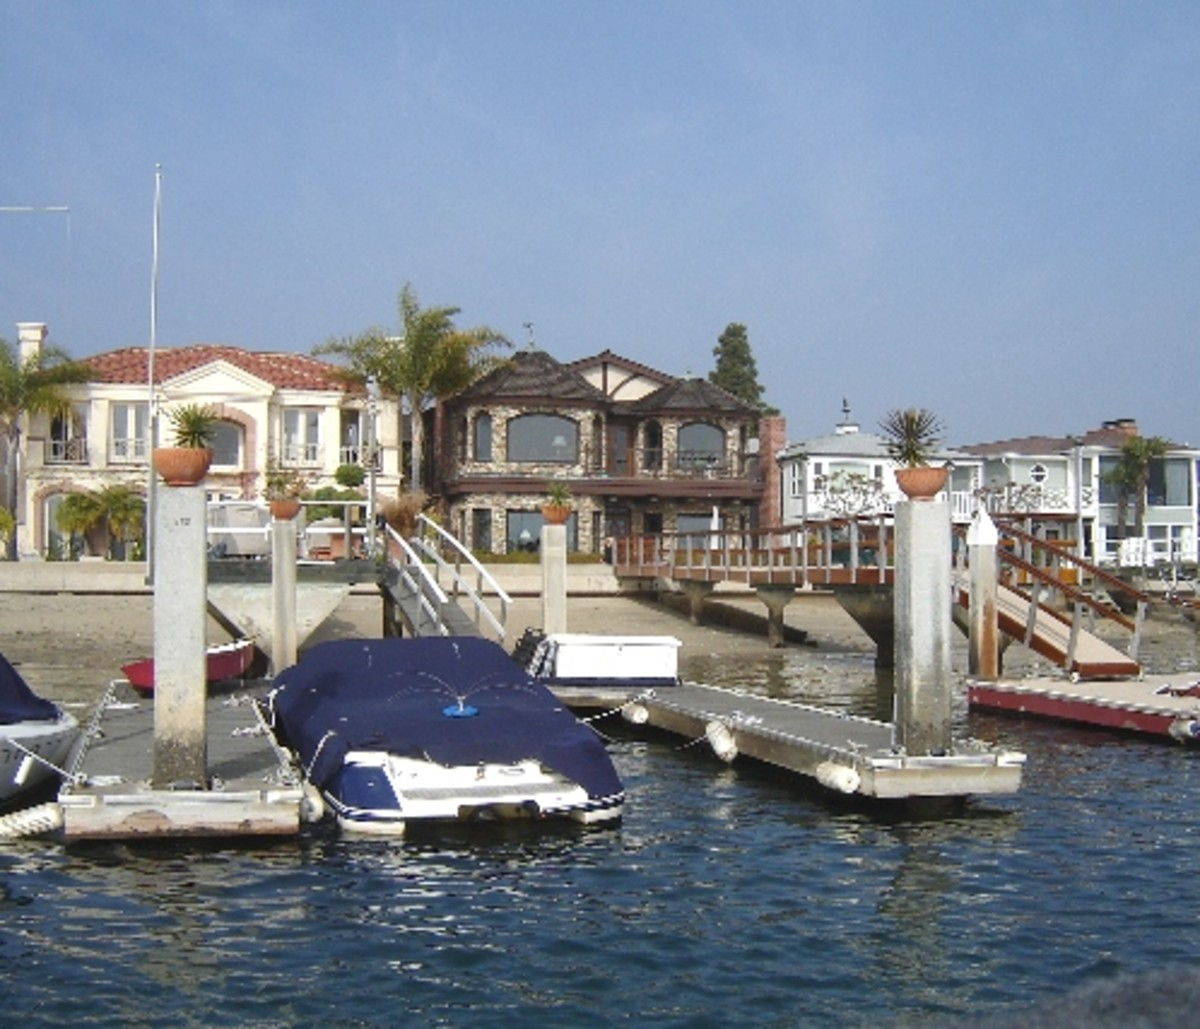 Fun Zone Tour points out houses of celebrities on Balboa Island